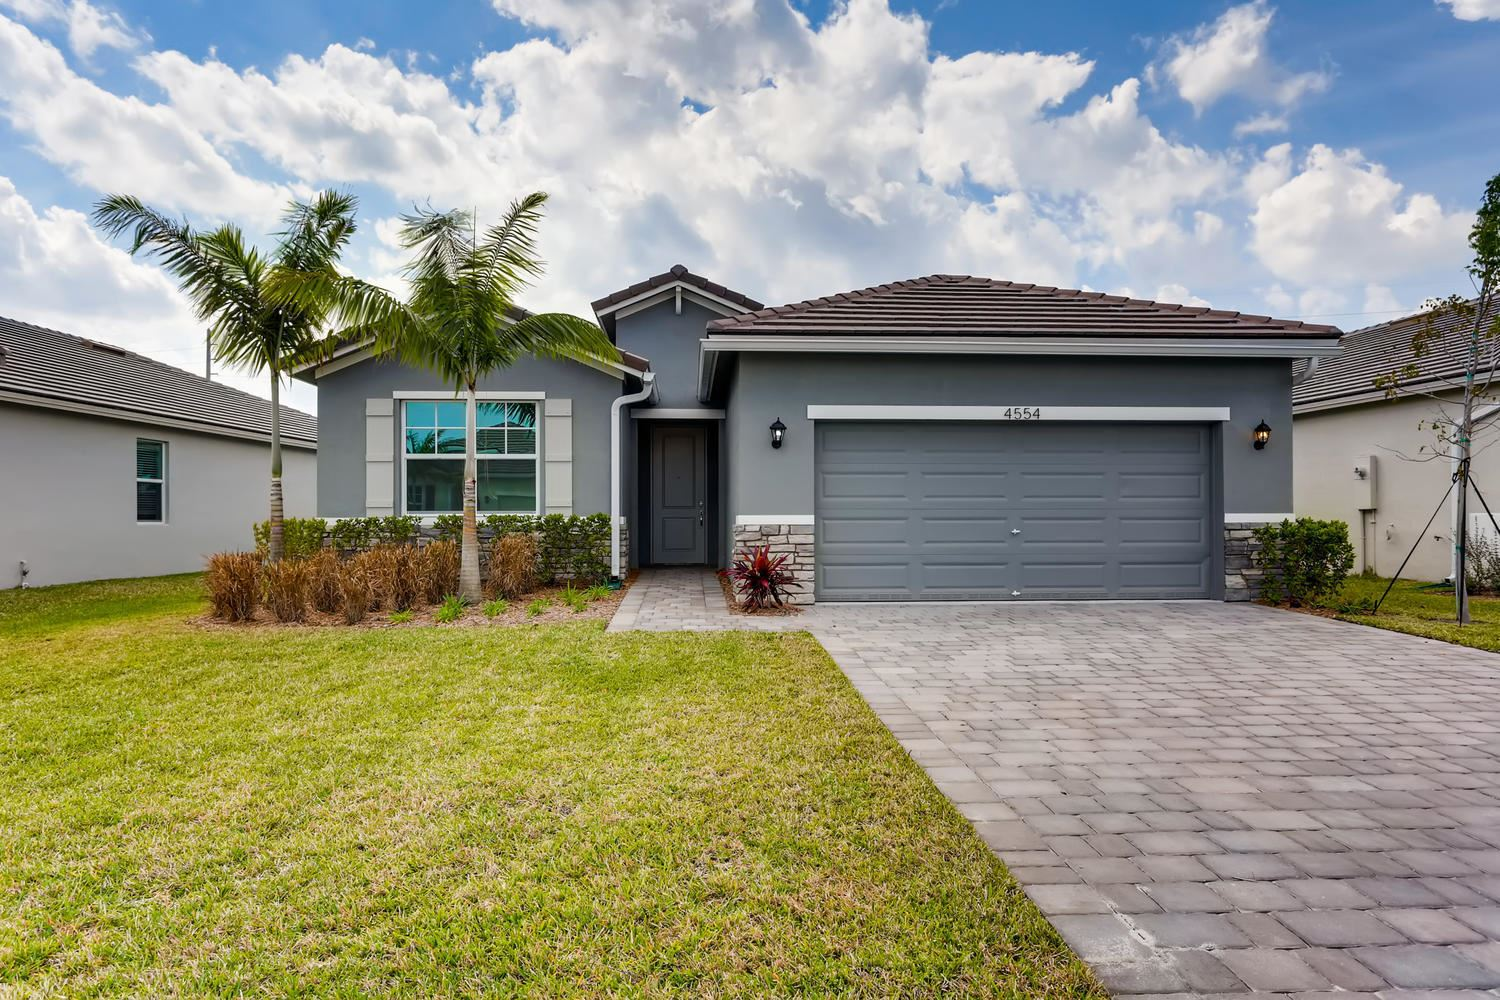 4554 NW King Court, Jensen Beach, FL 34957 - #: RX-10528406